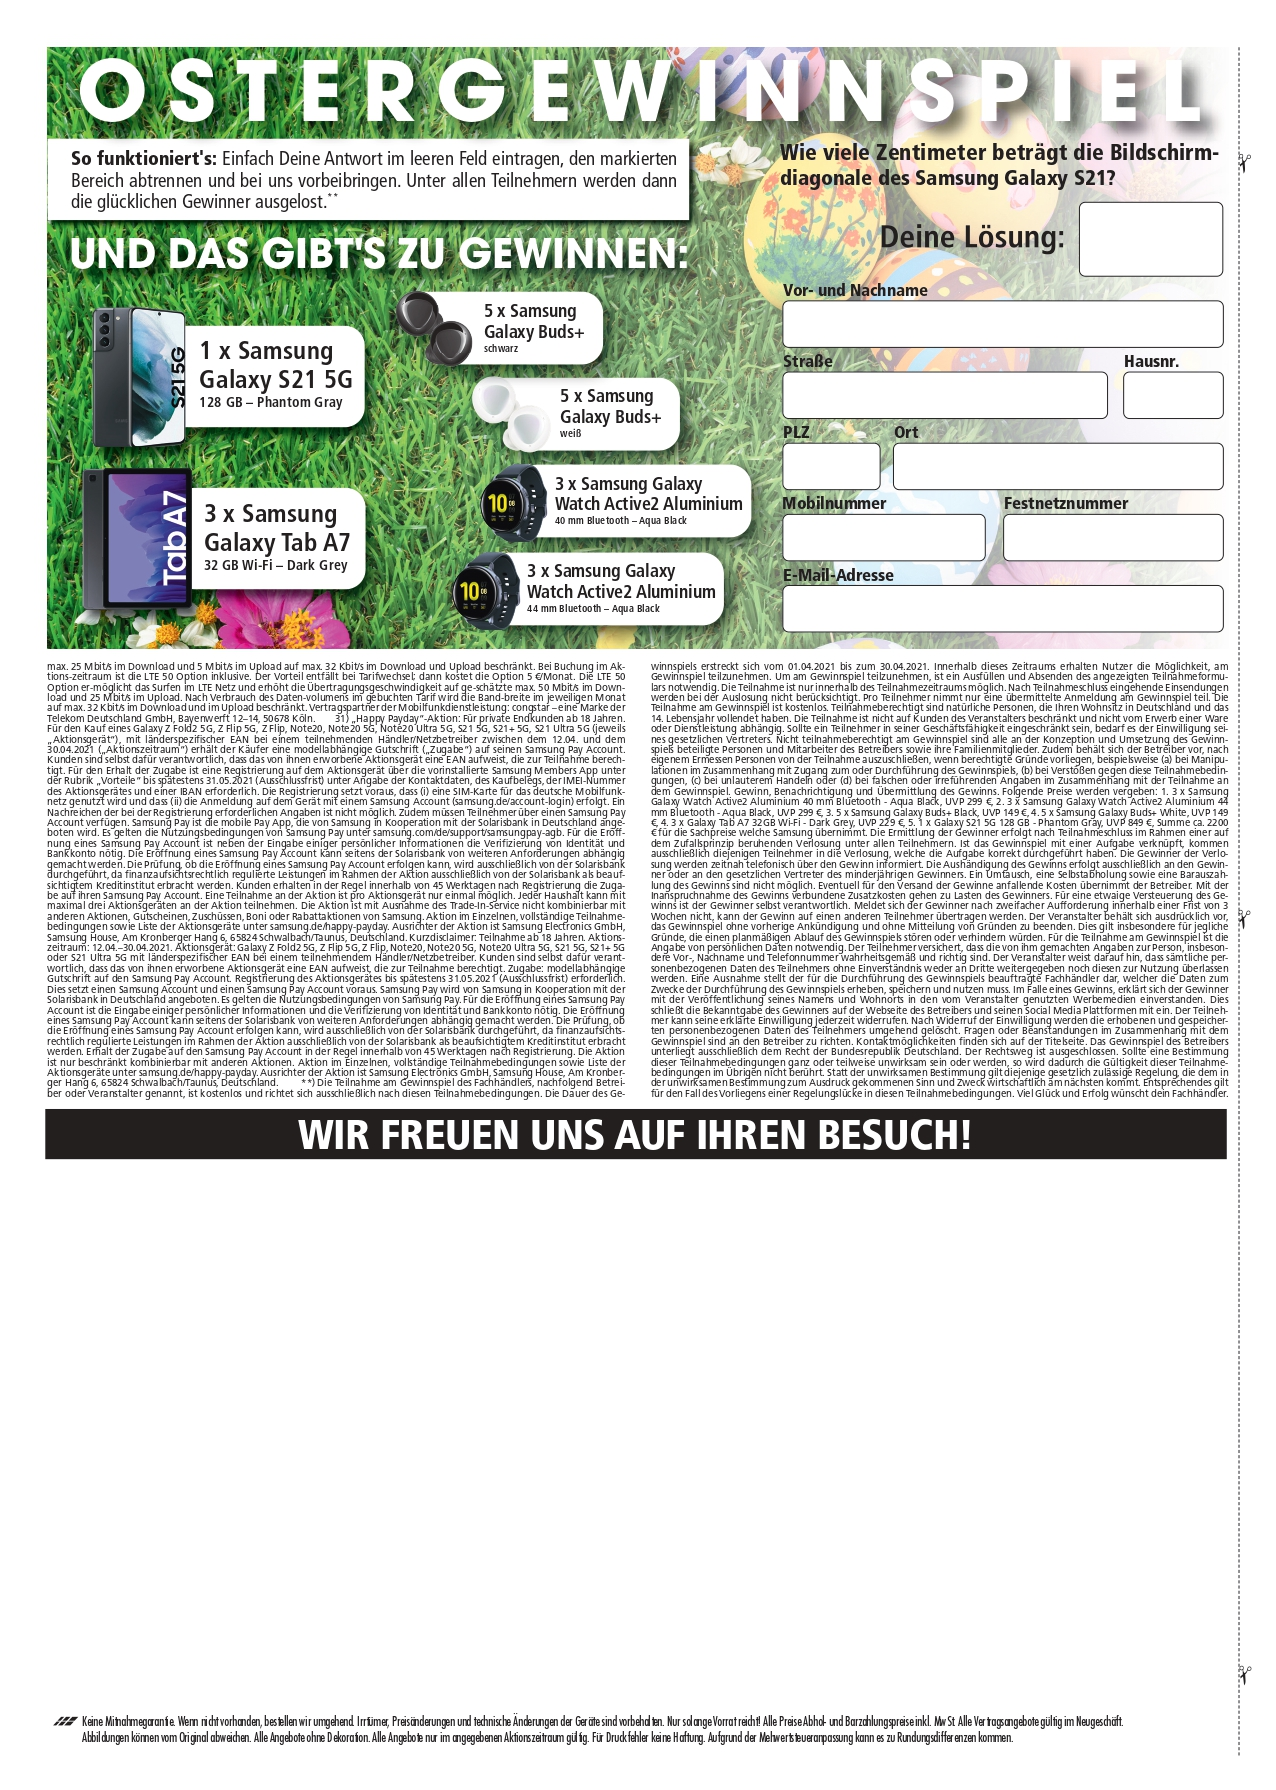 pos flyer_pages-to-jpg-0008